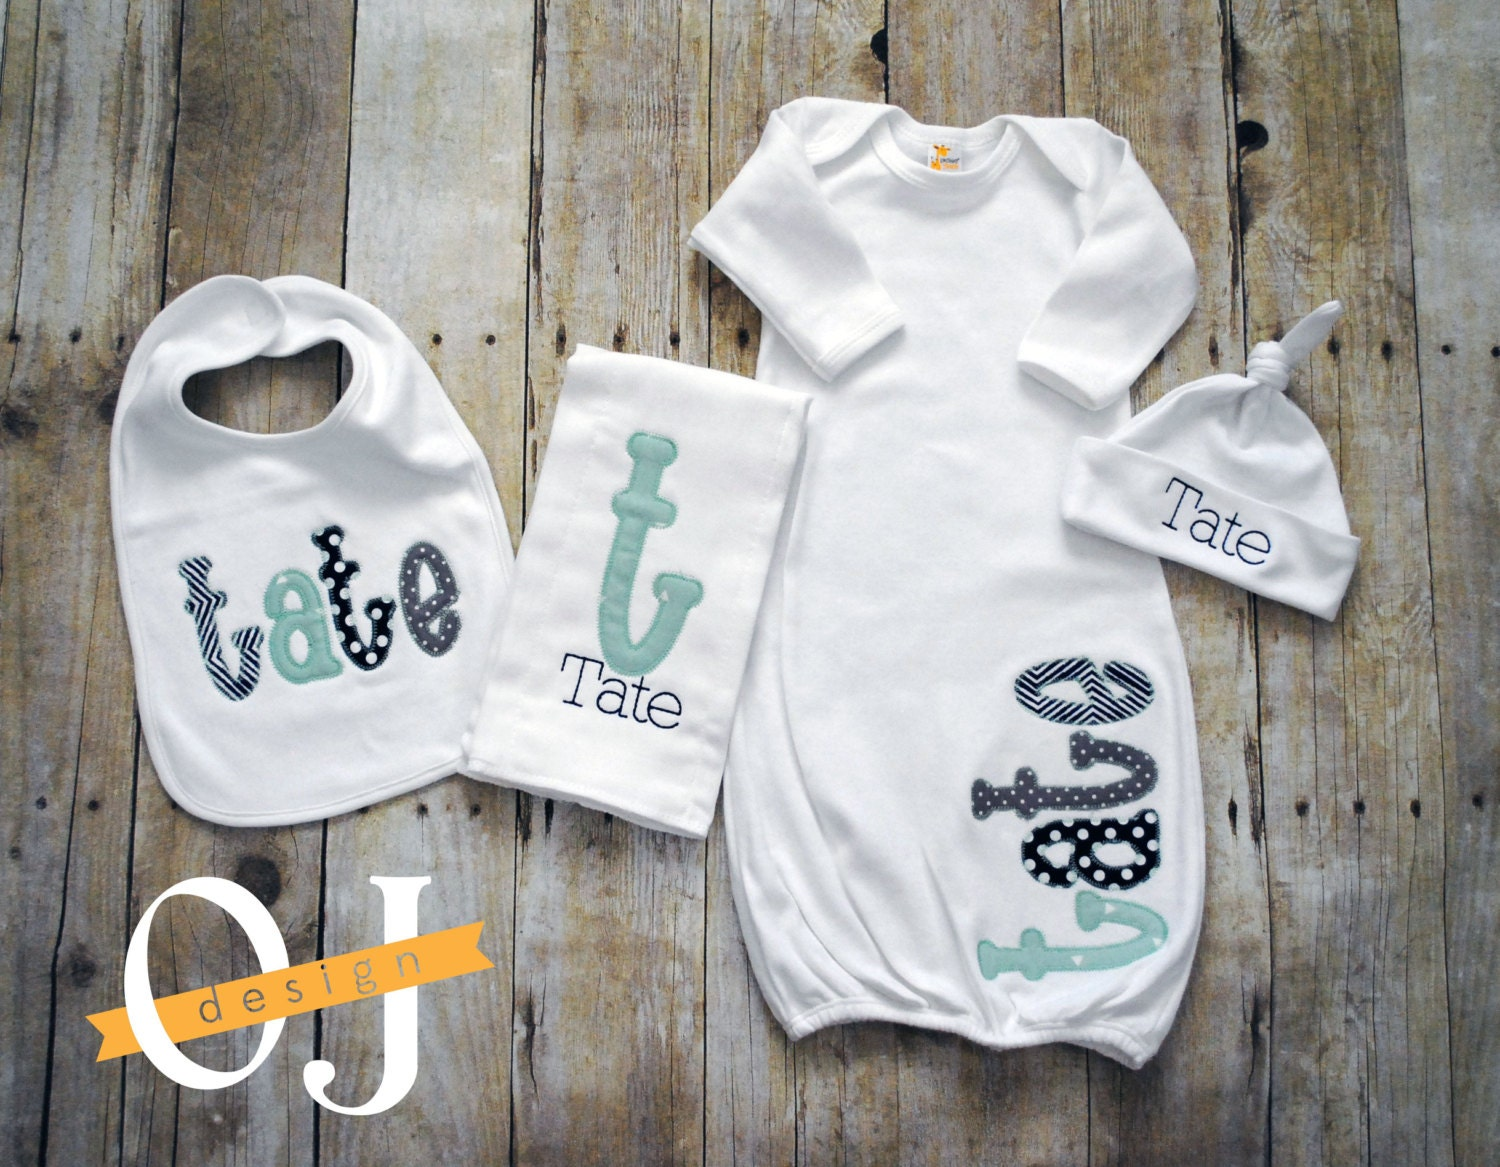 Personalised Baby Gift Sets : Personalized baby boy gift set newborn infant